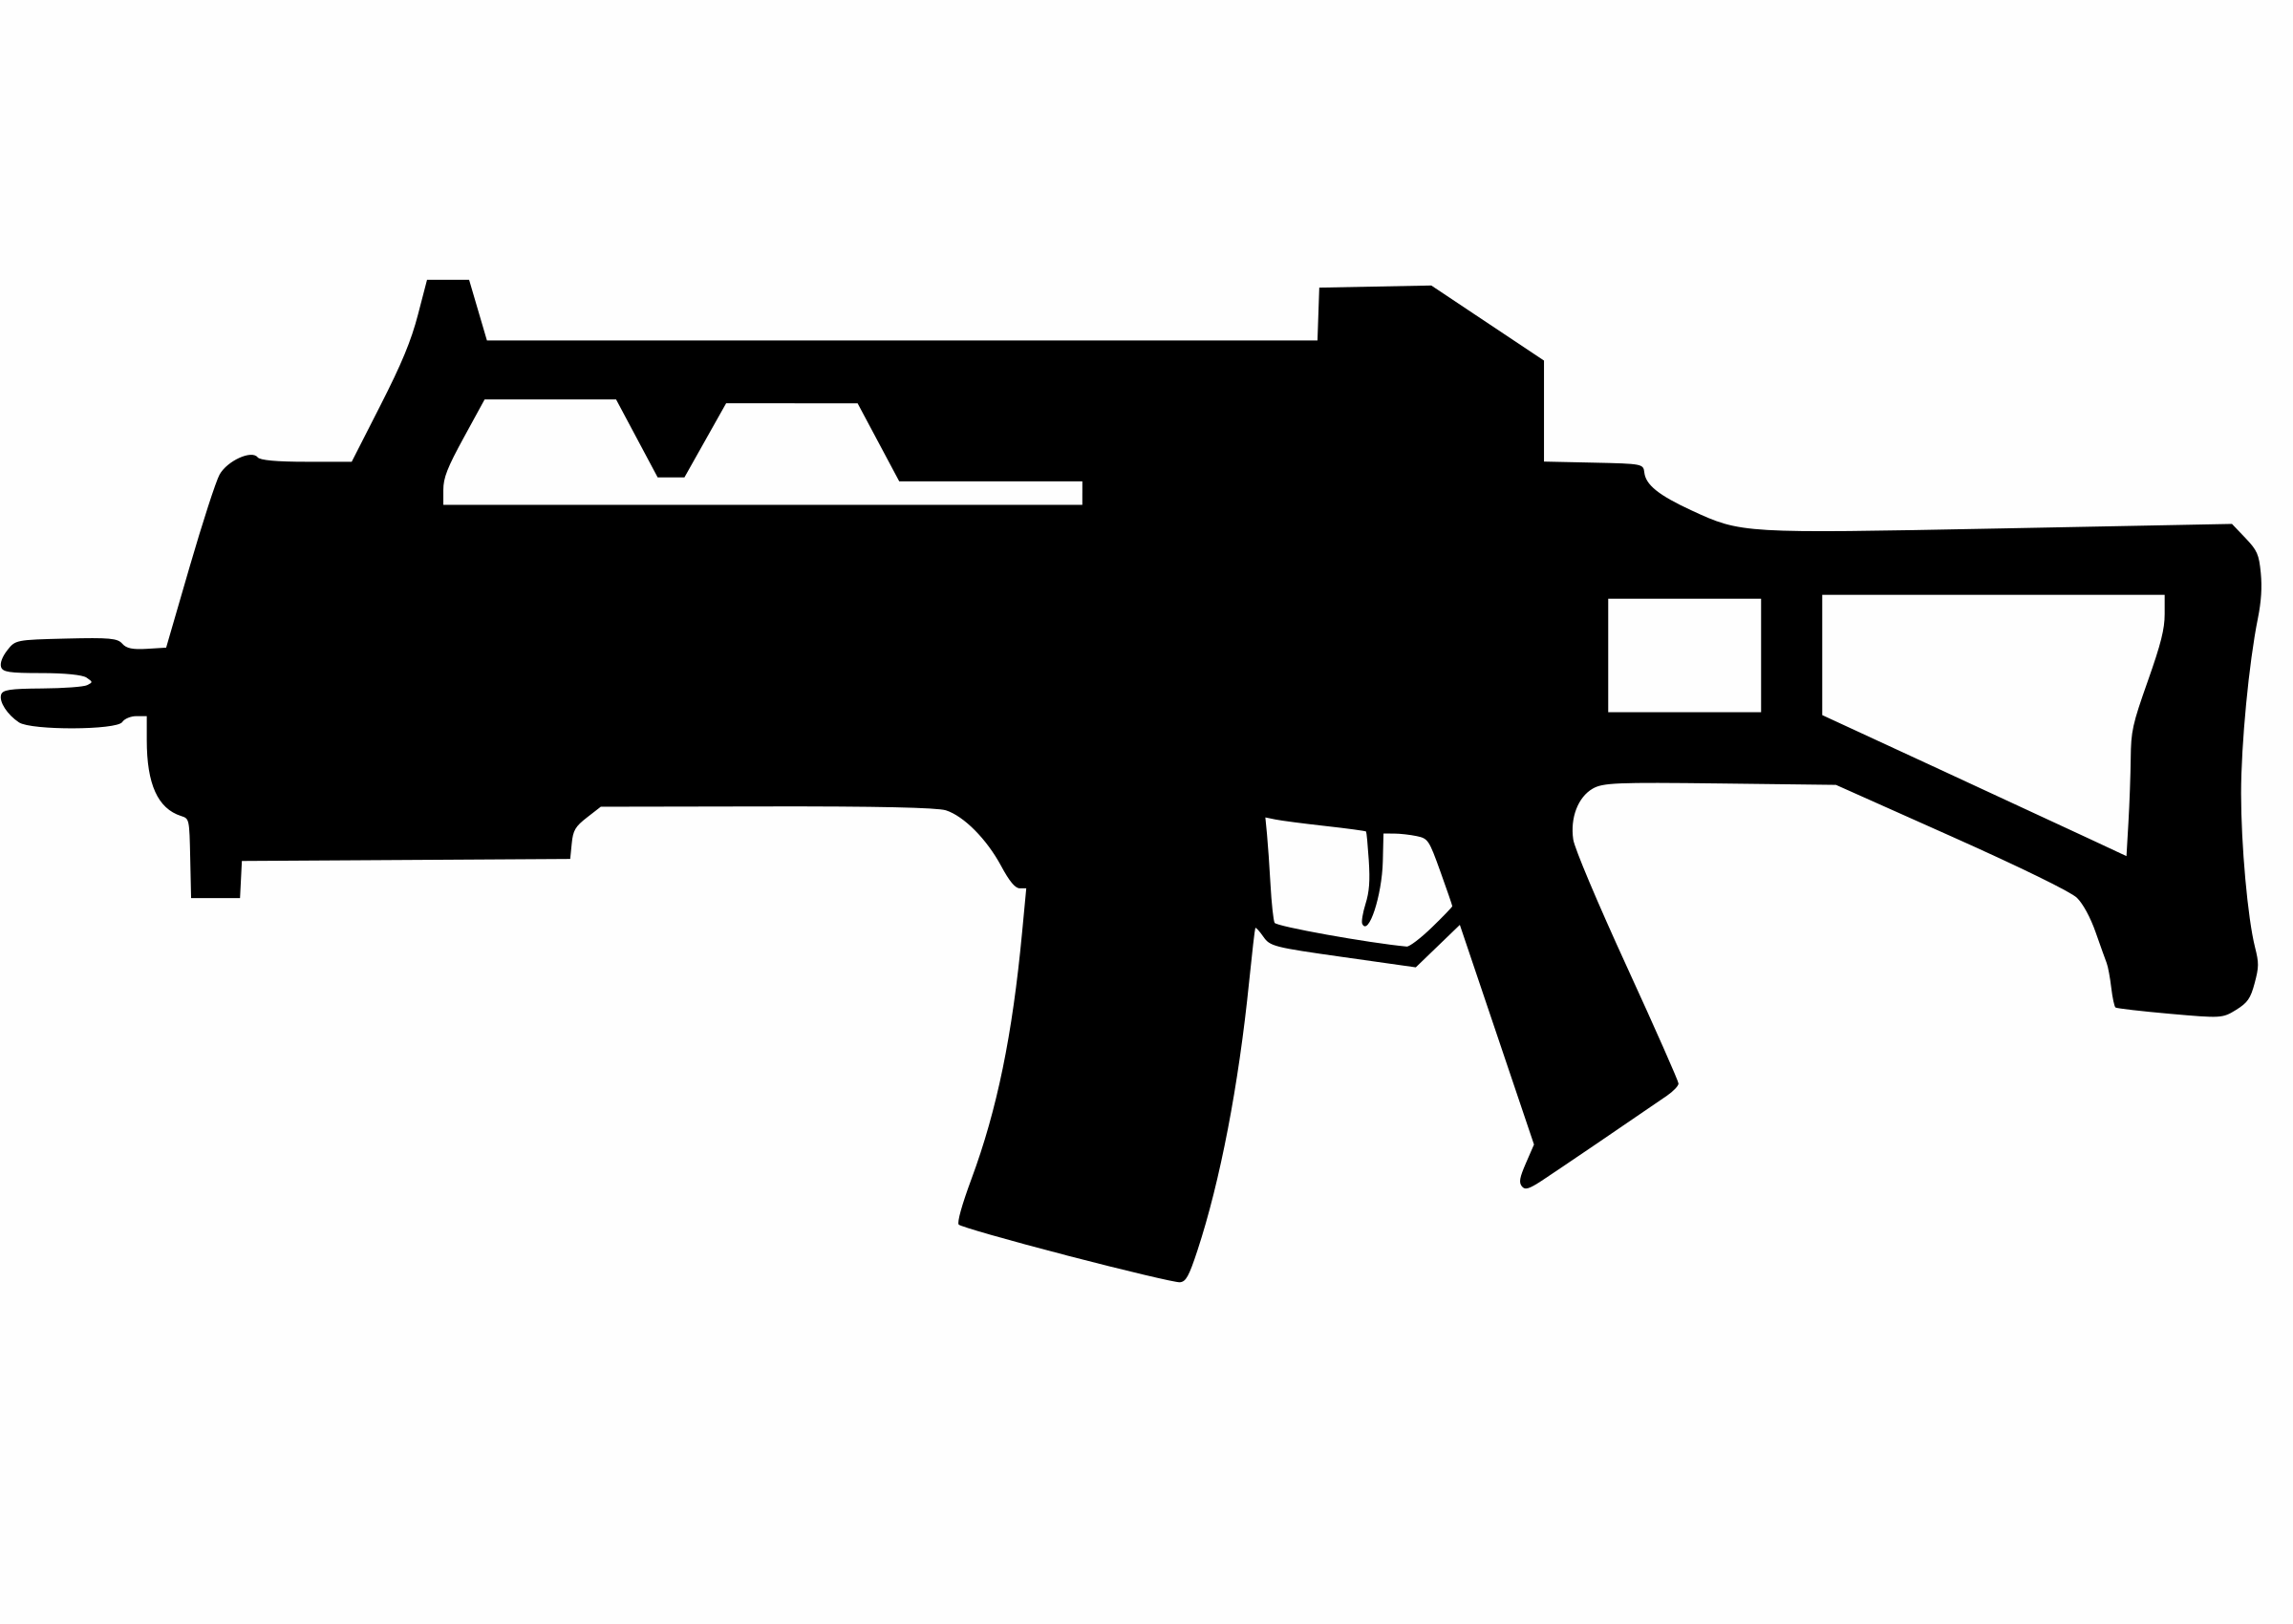 Assault Rifle clipart #10, Download drawings